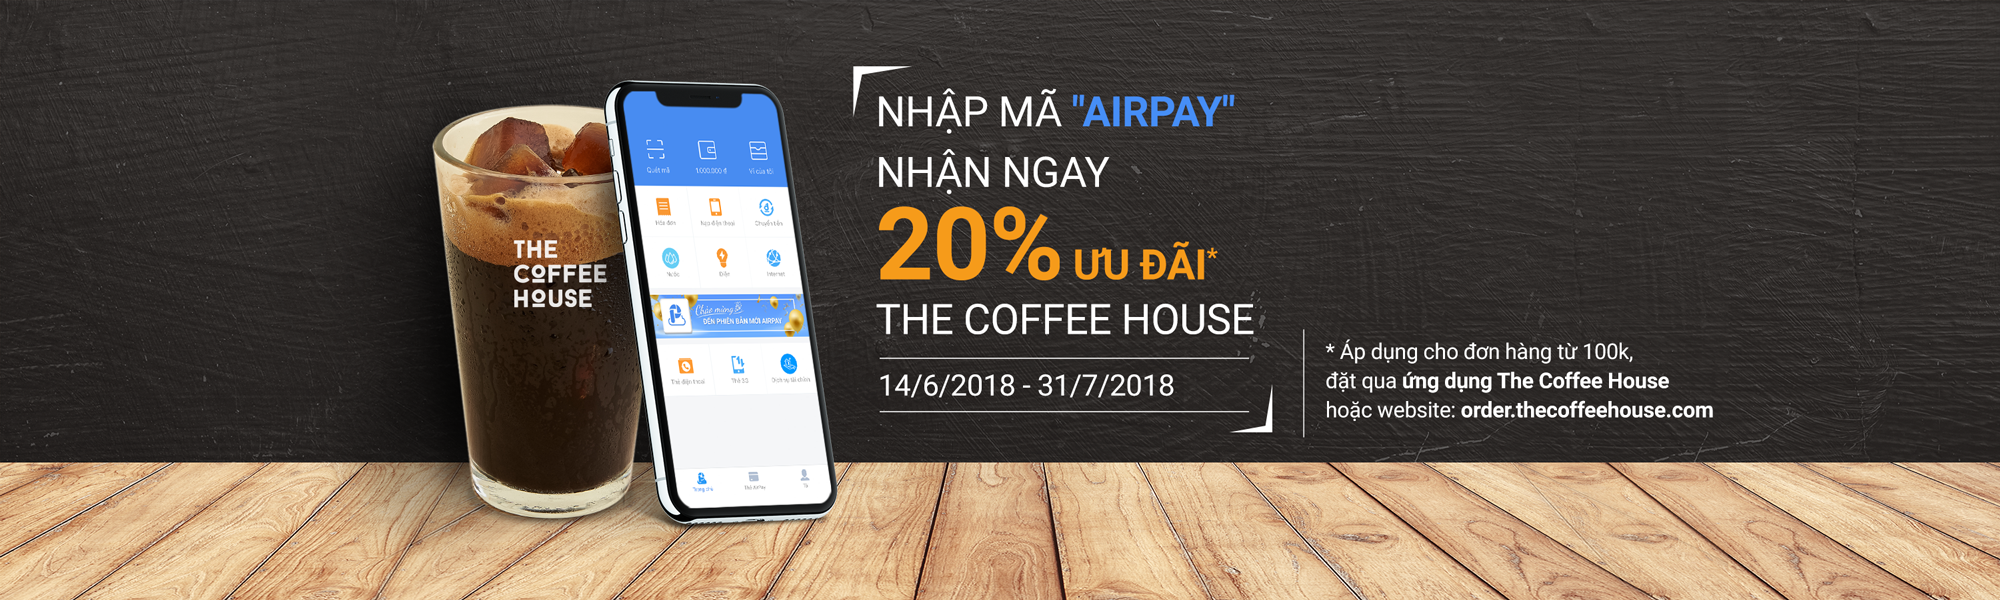 nhap-ma-airpay-nhan-ngay-uu-dai-20-the-coffee-house